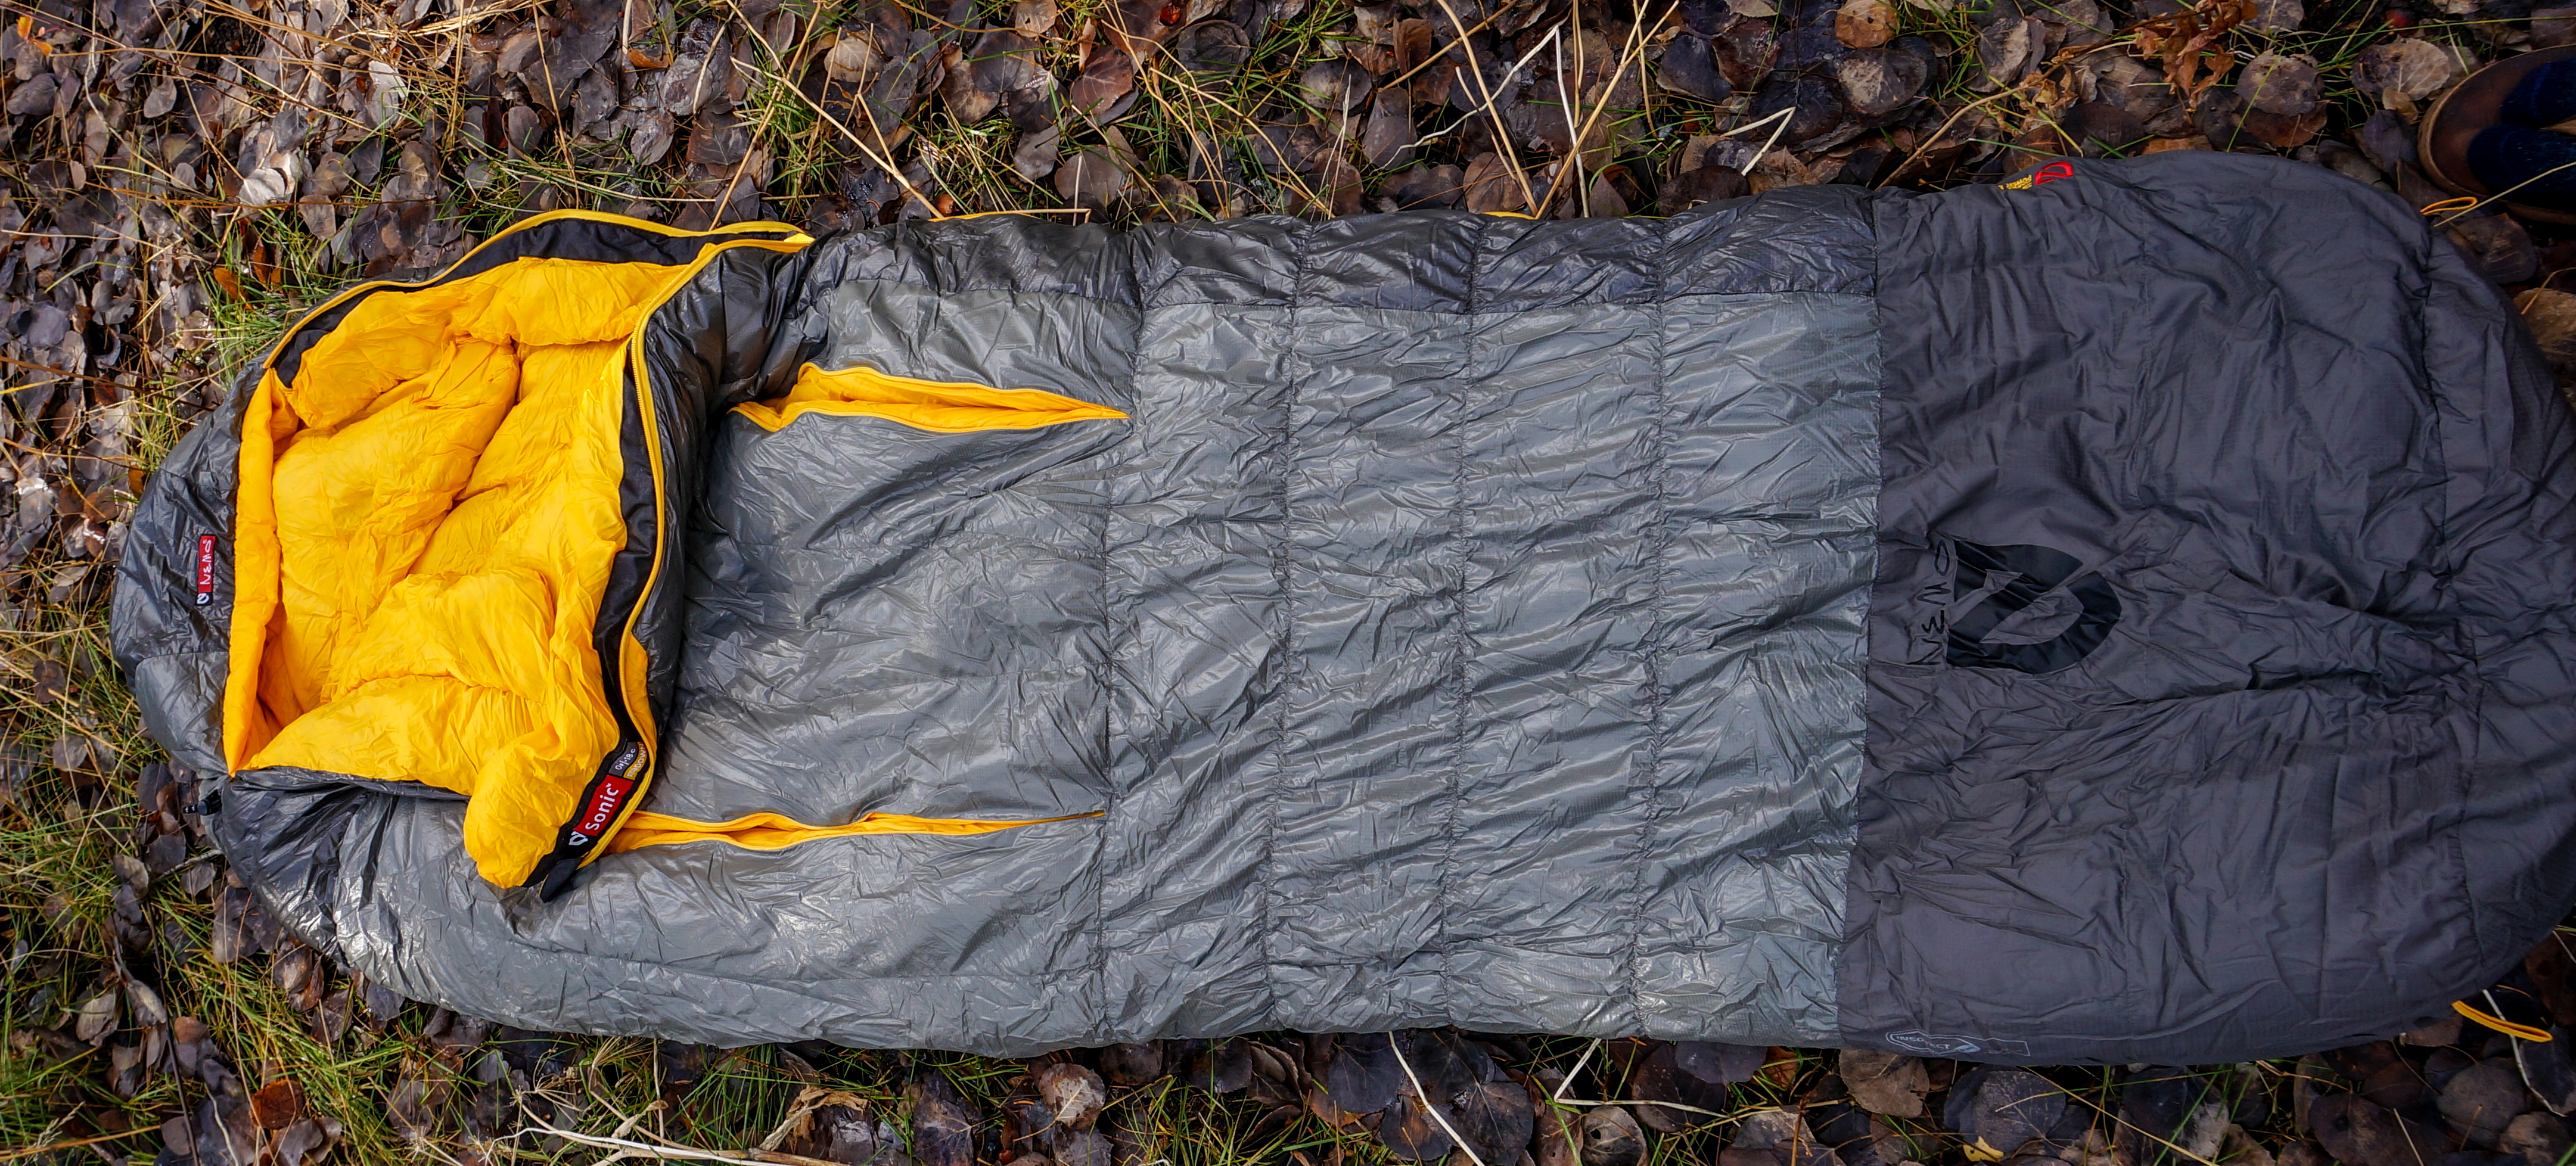 Goretex Sleeping Bag